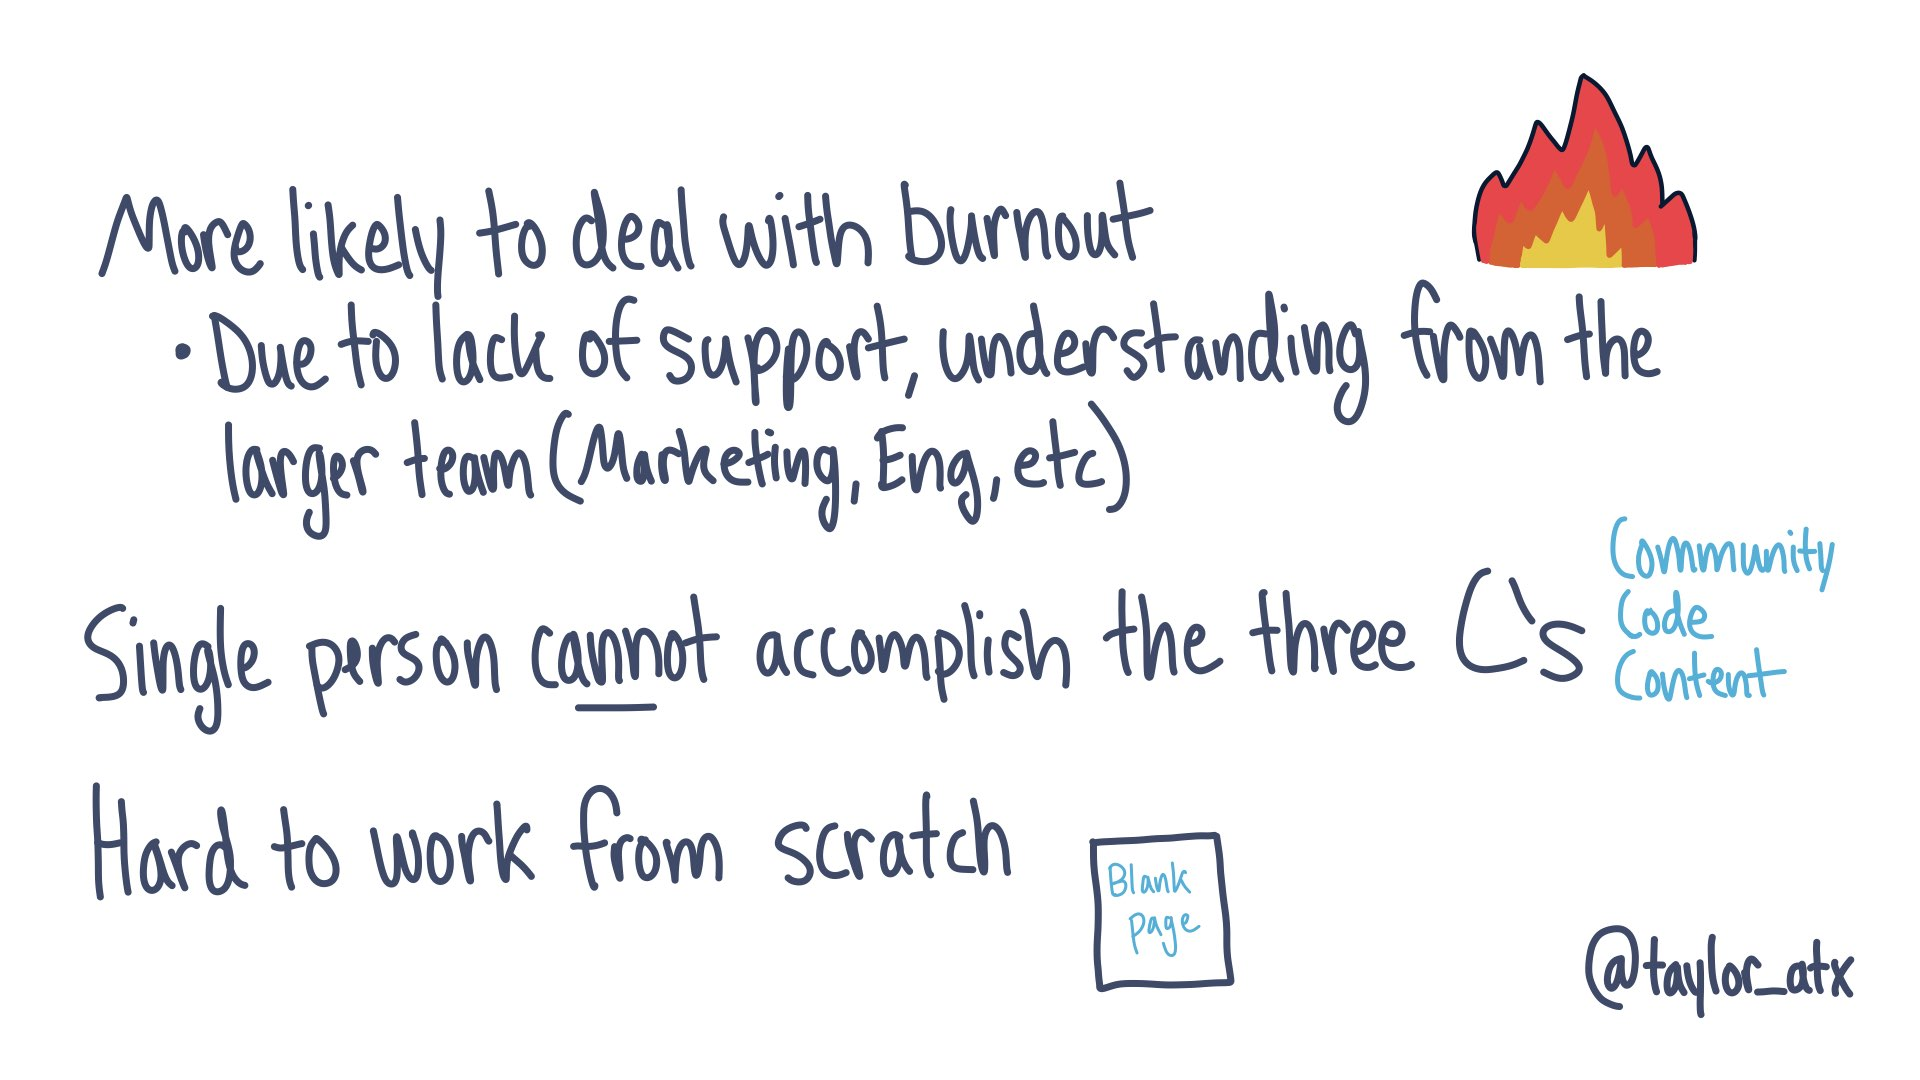 More likely to deal with burnout (due to a lack of support, understanding from the larger team (Marketing, Eng, etc.), single person cannot accomplish the three C's (community, code, content), hard to work from scratch